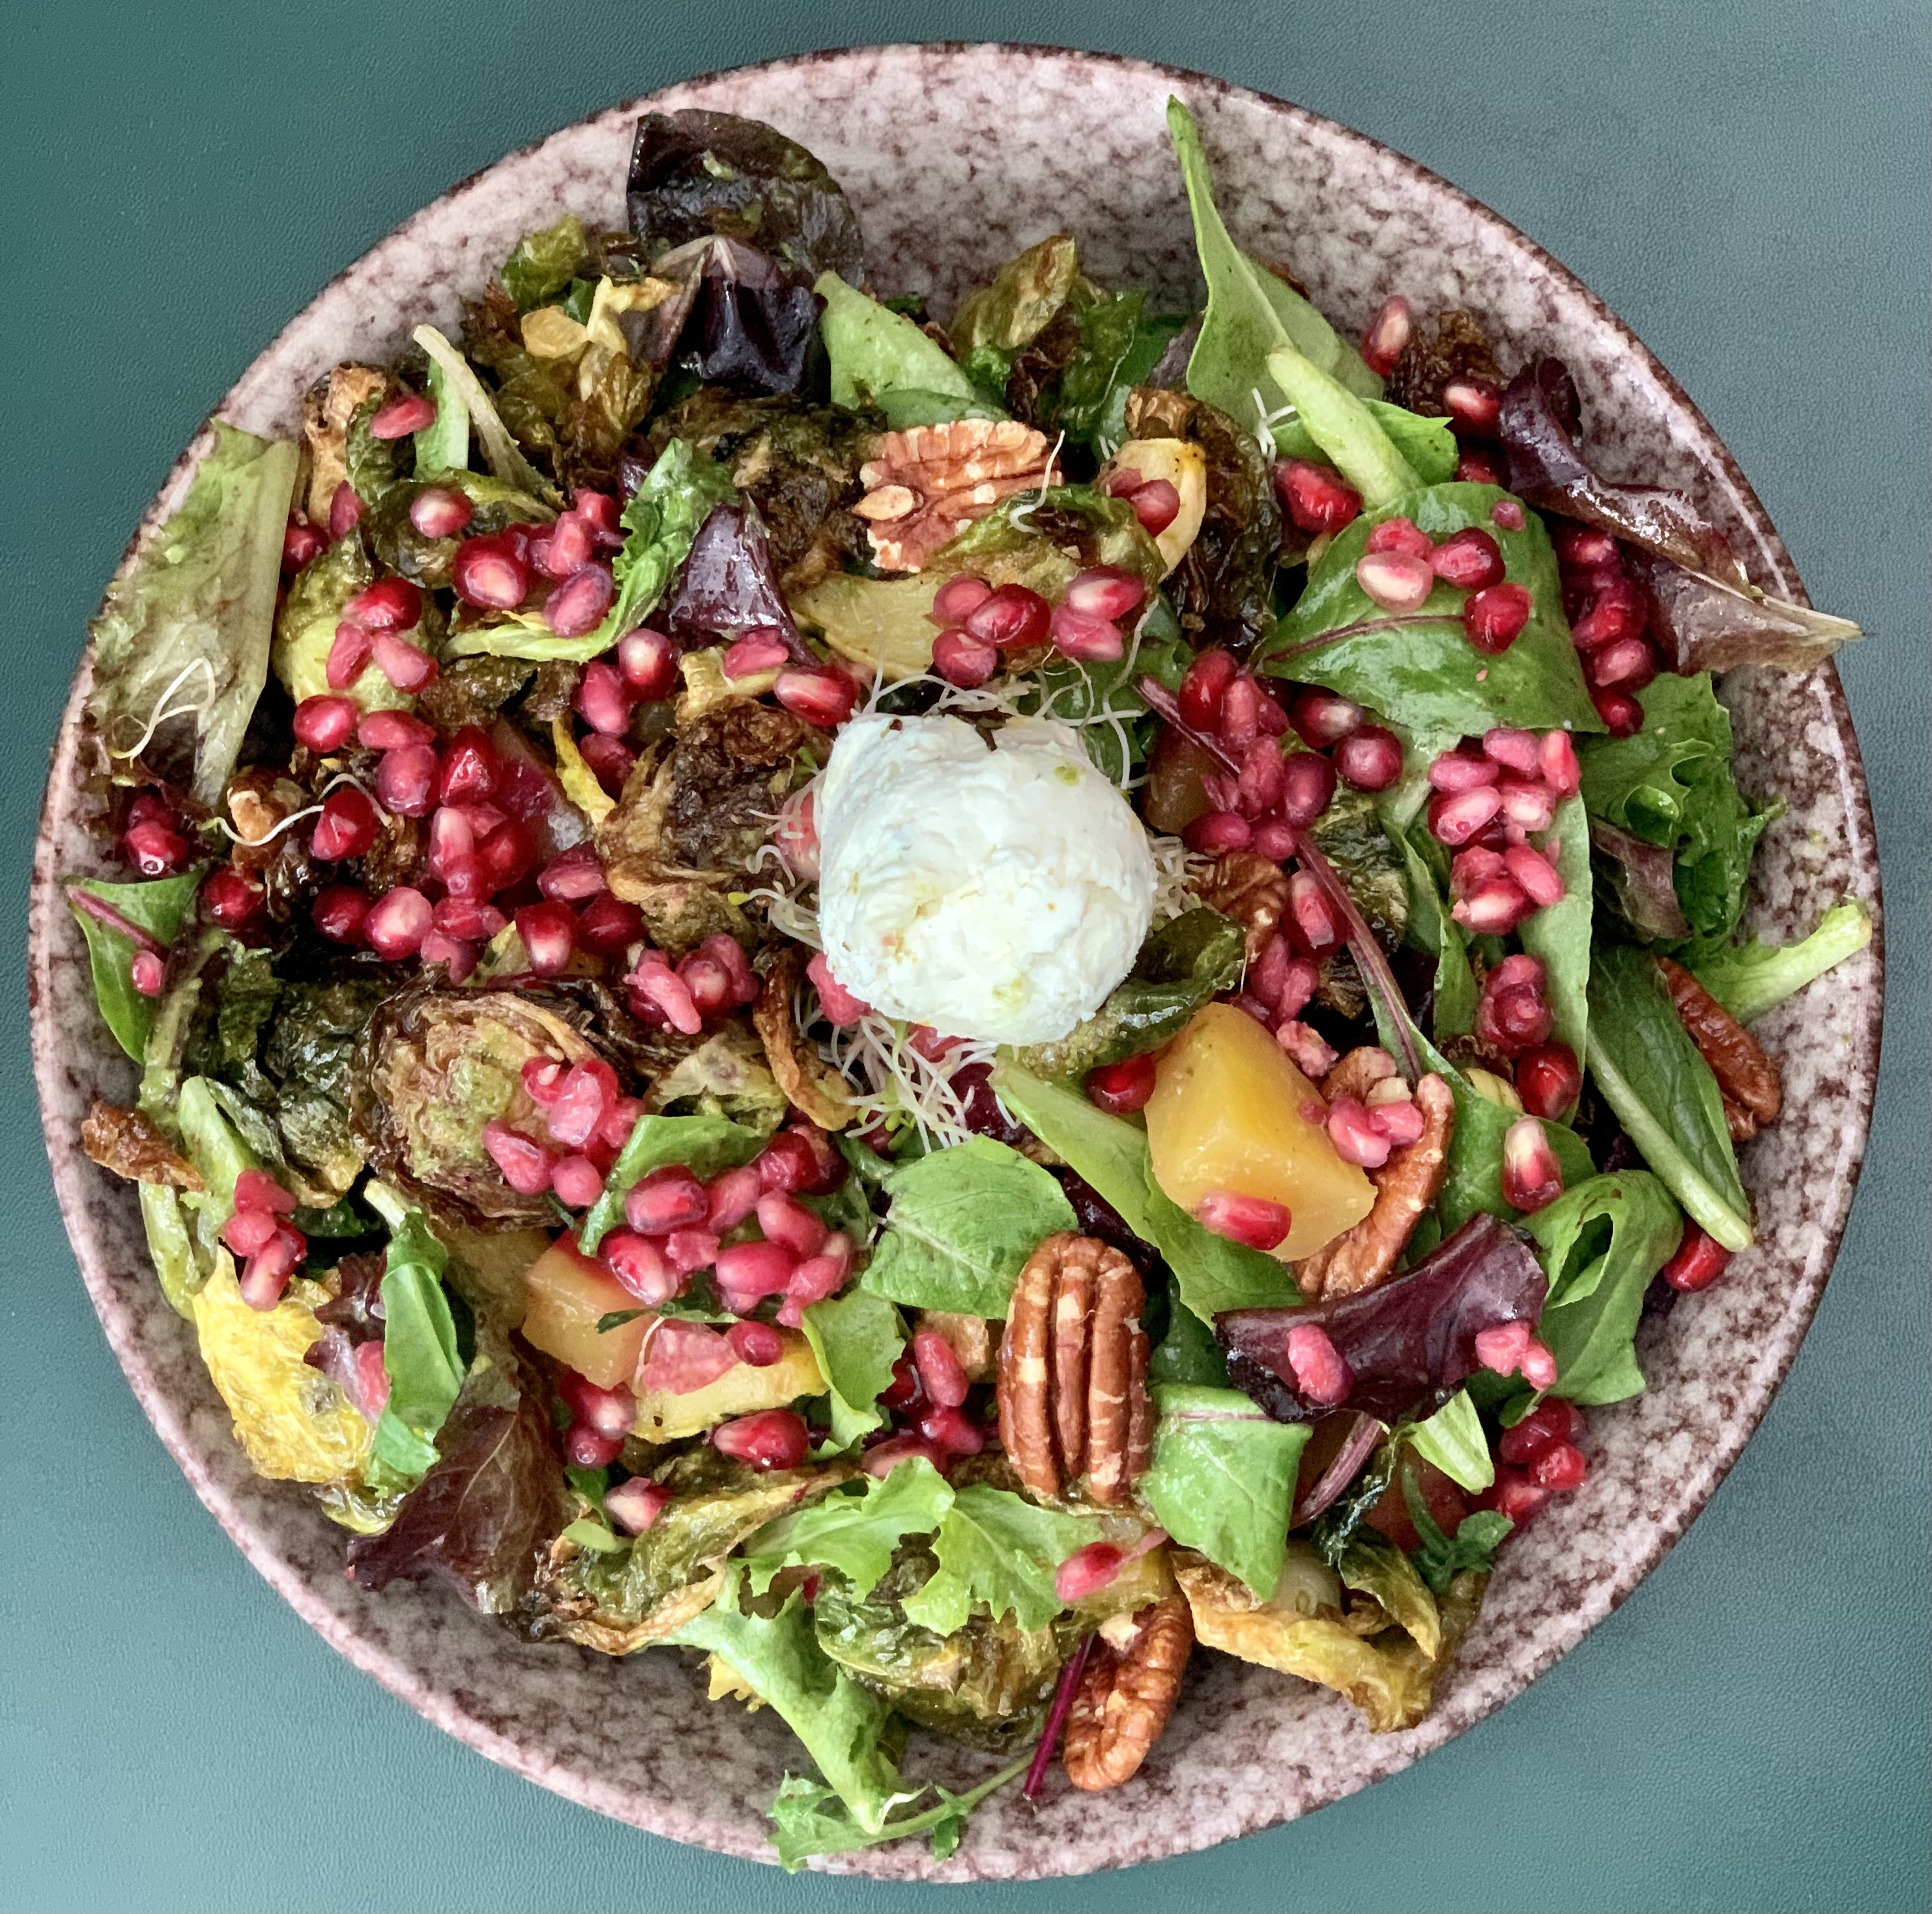 a green leafy salad with squash, pecans and pomegranate seeds